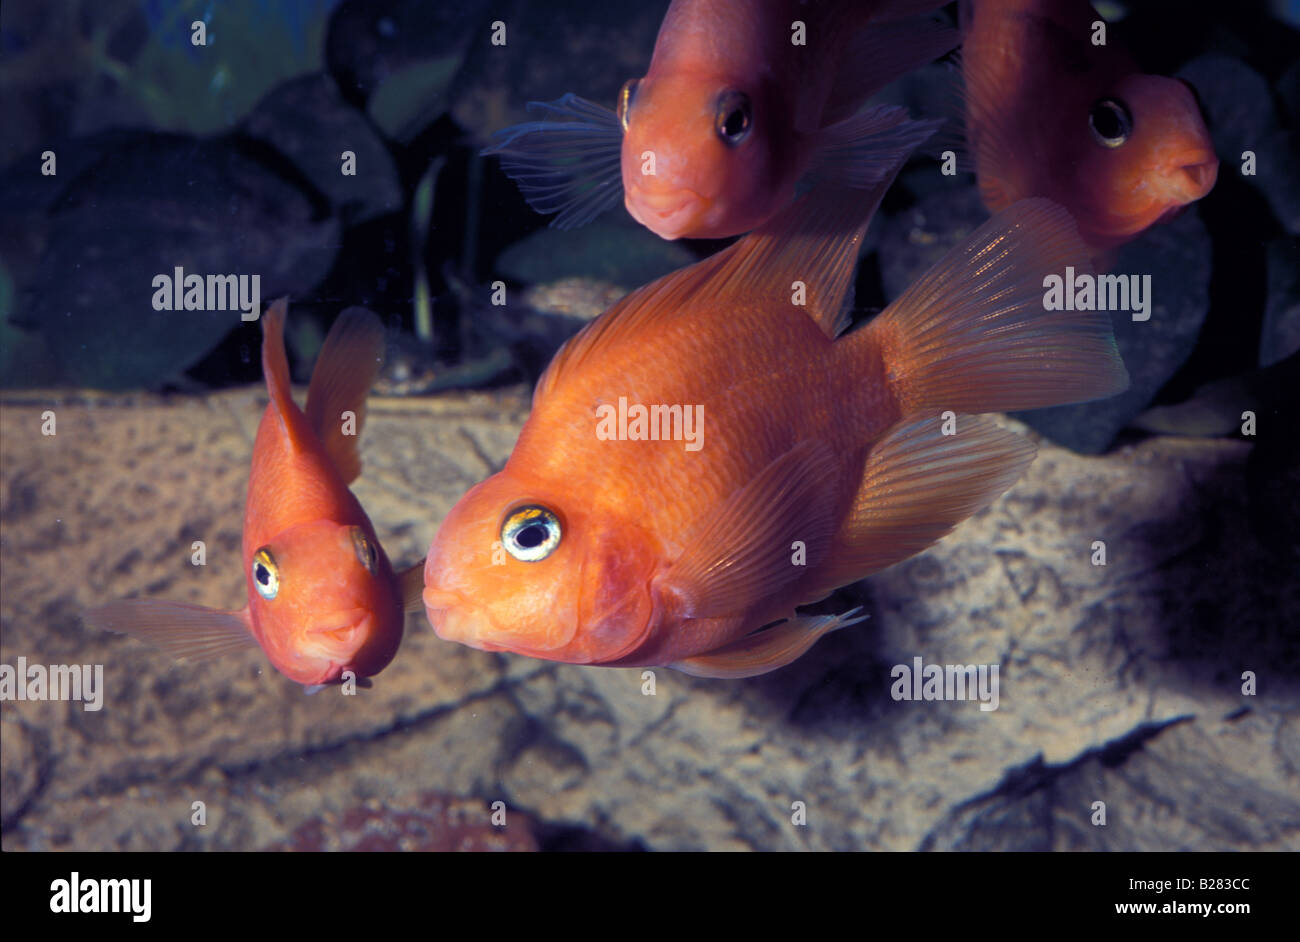 red parrot cichlid hybrid freshewater fish stock photo 18617996